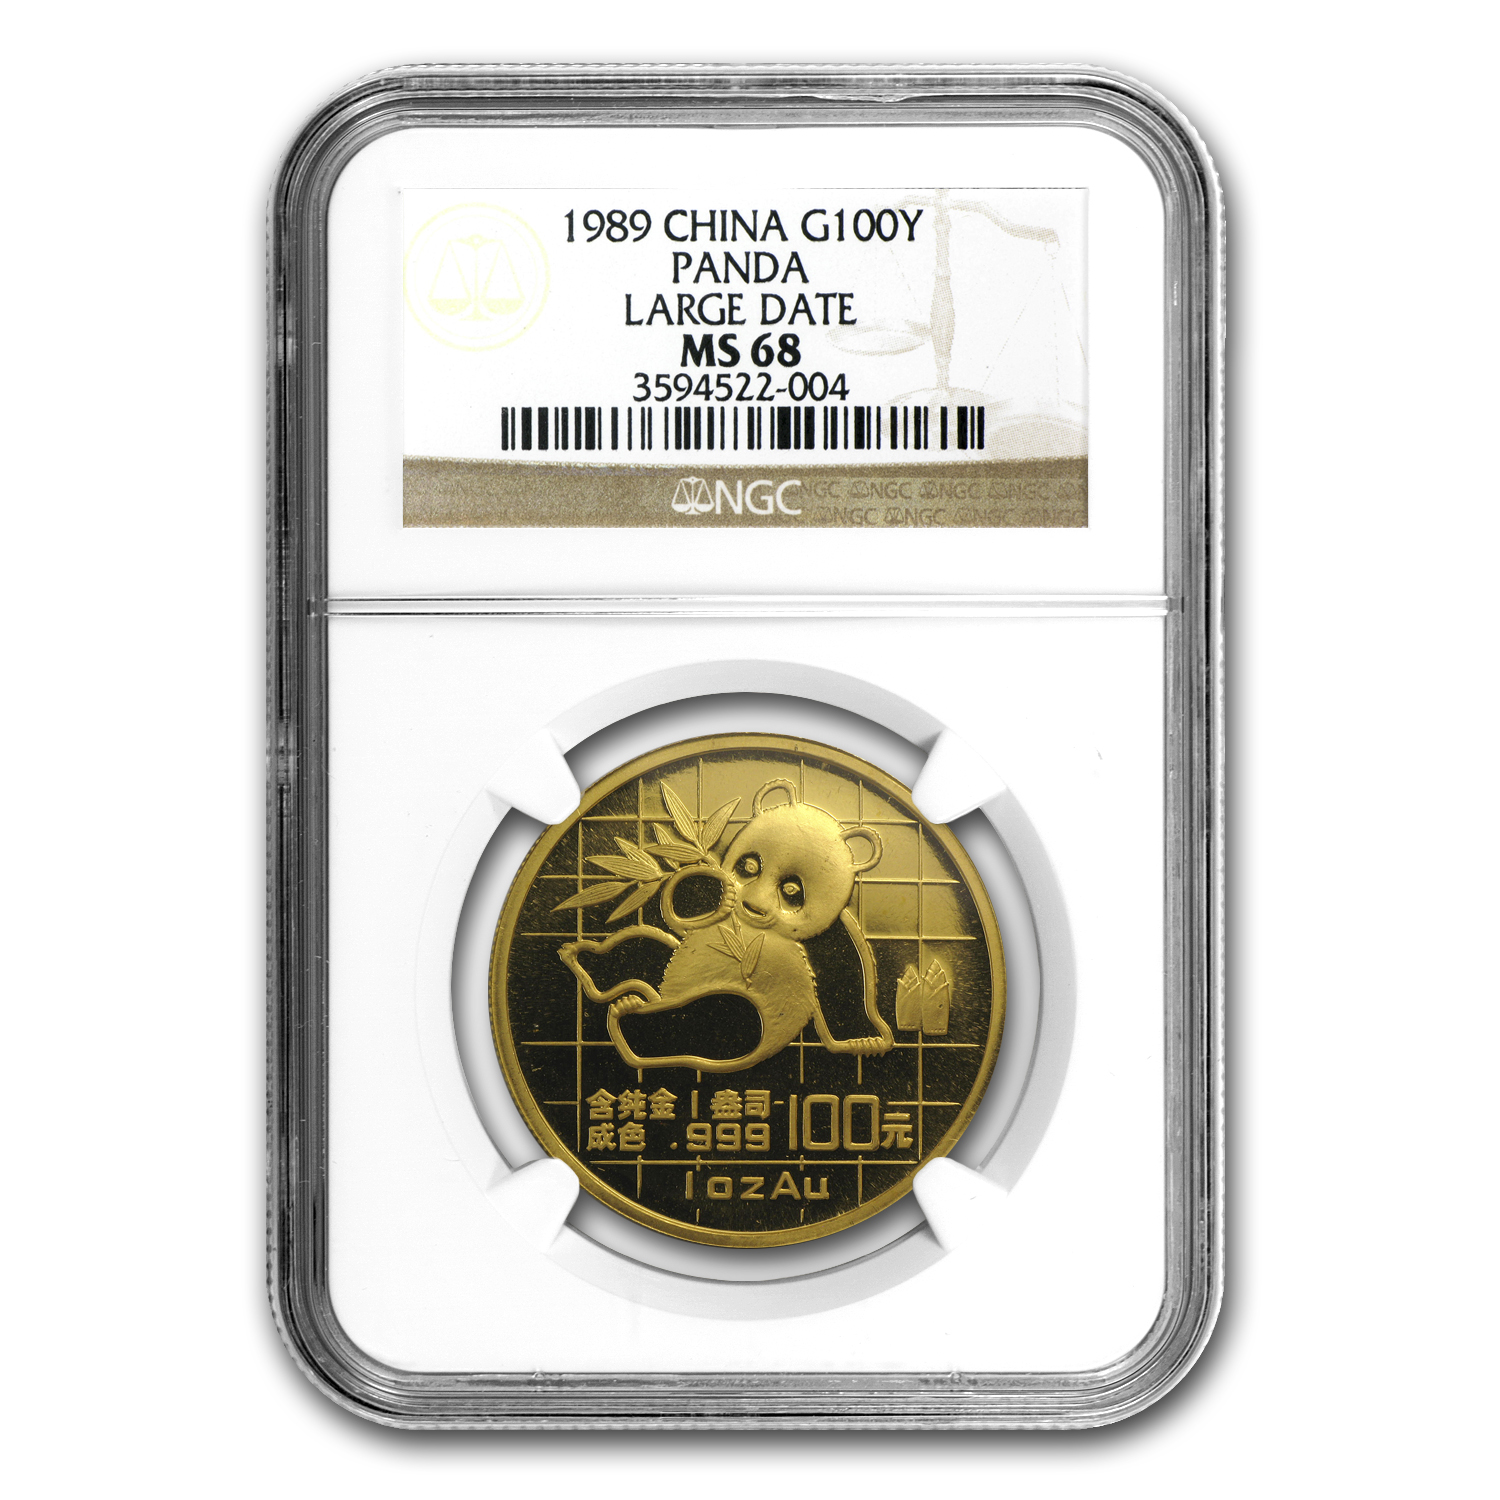 1989 China 1 oz Gold Panda Large Date MS-68 NGC